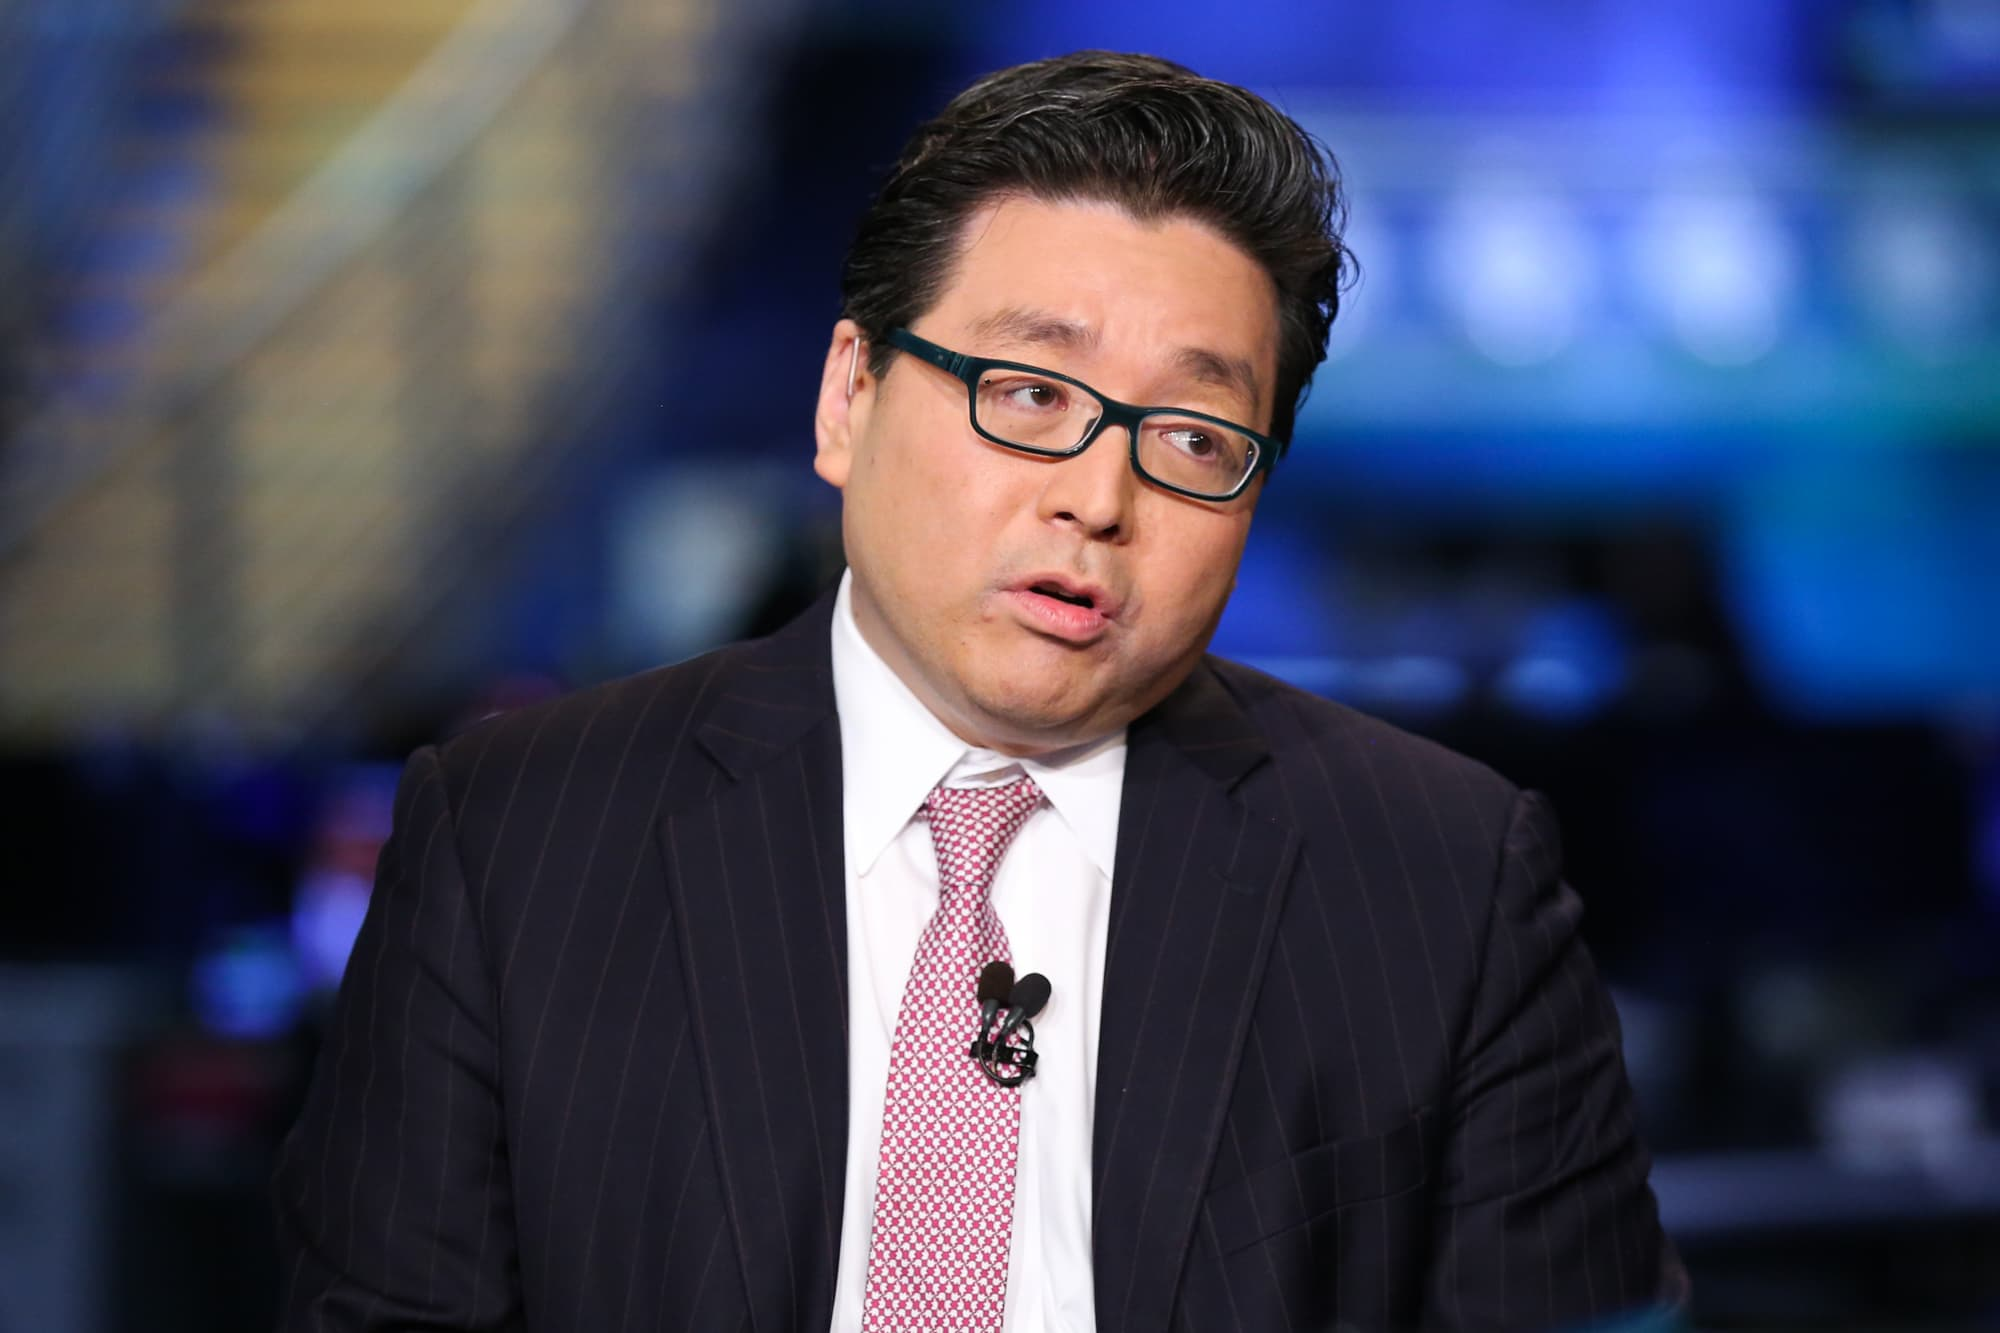 Retail investors are here to stay as a force in stock market: Tom Lee